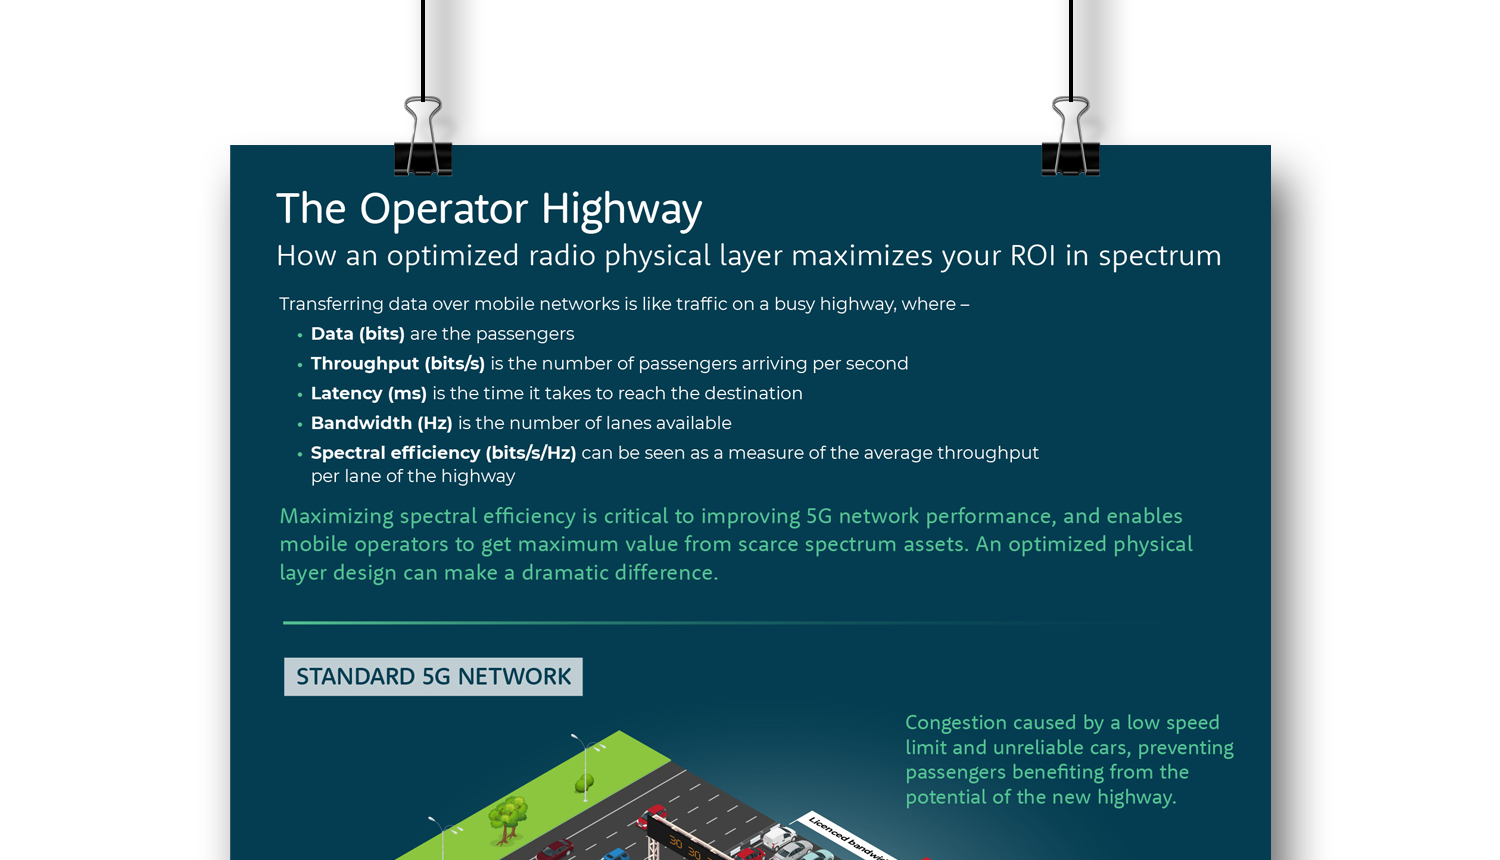 Maximize your ROI in spectrum with an optimized radio physical layer